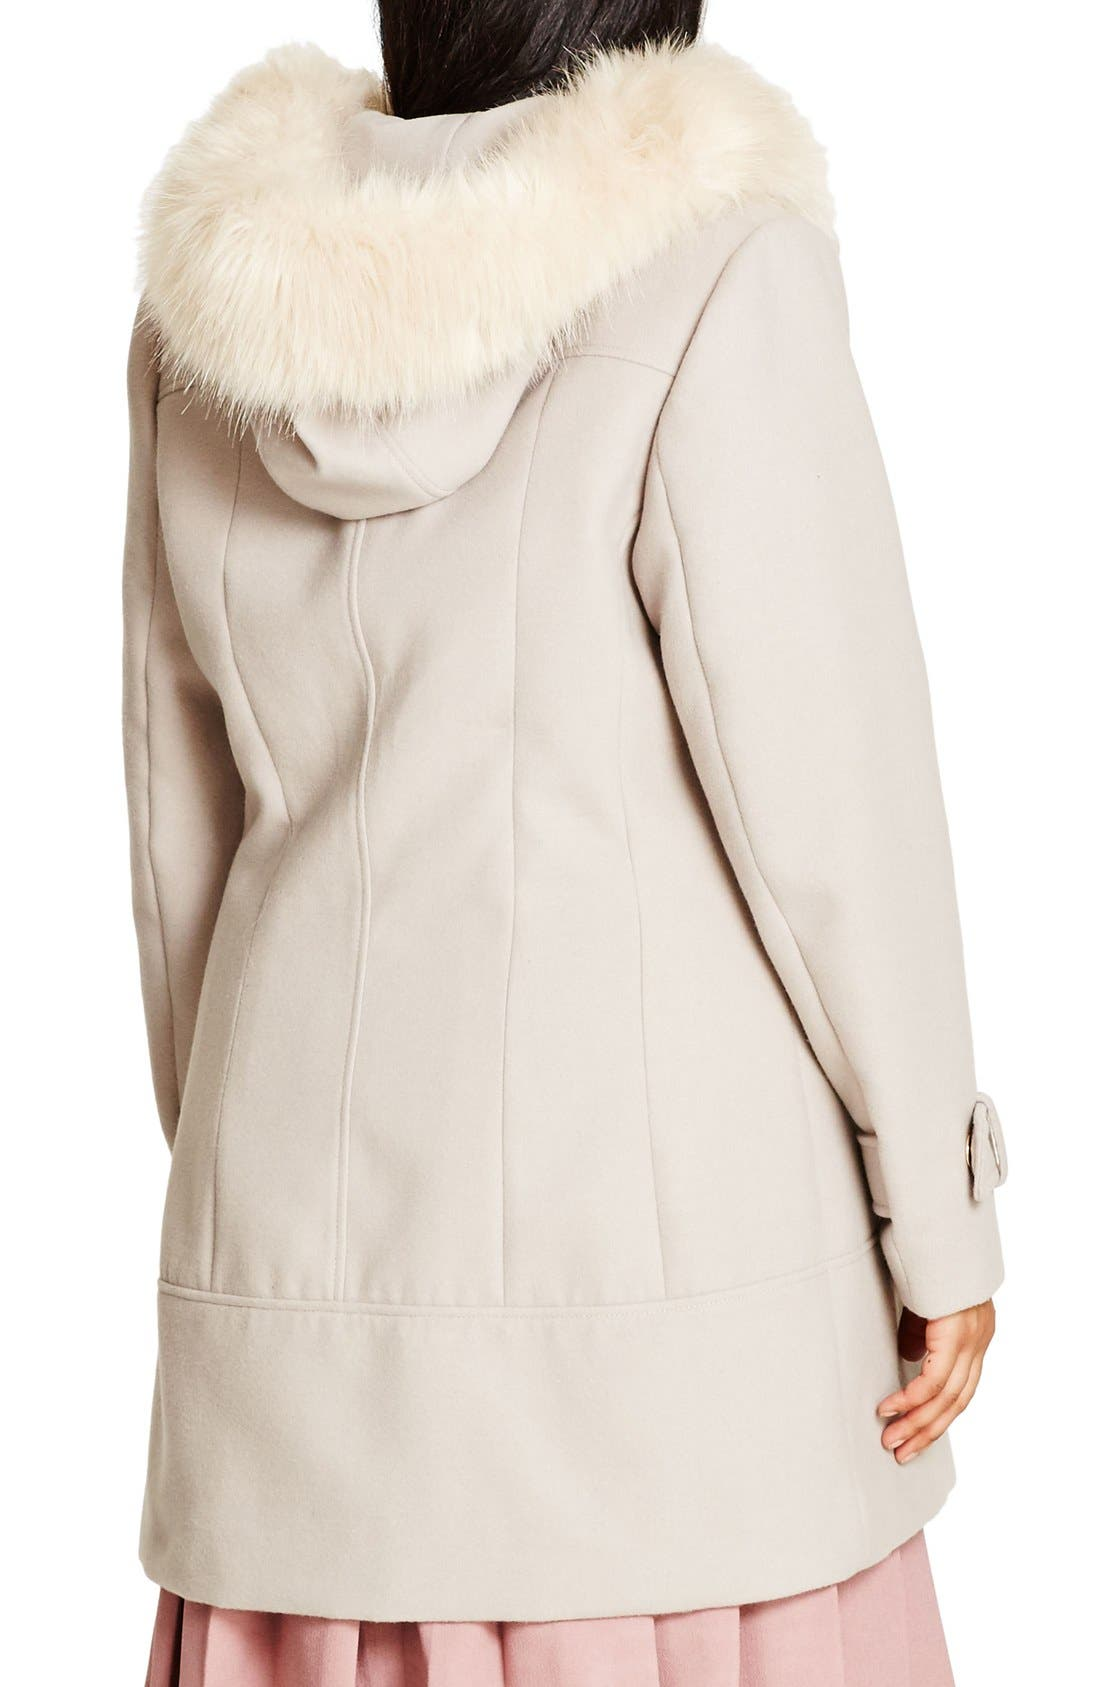 'Winter Warm' Faux Fur Trim Duffle Coat,                             Alternate thumbnail 2, color,                             Nude